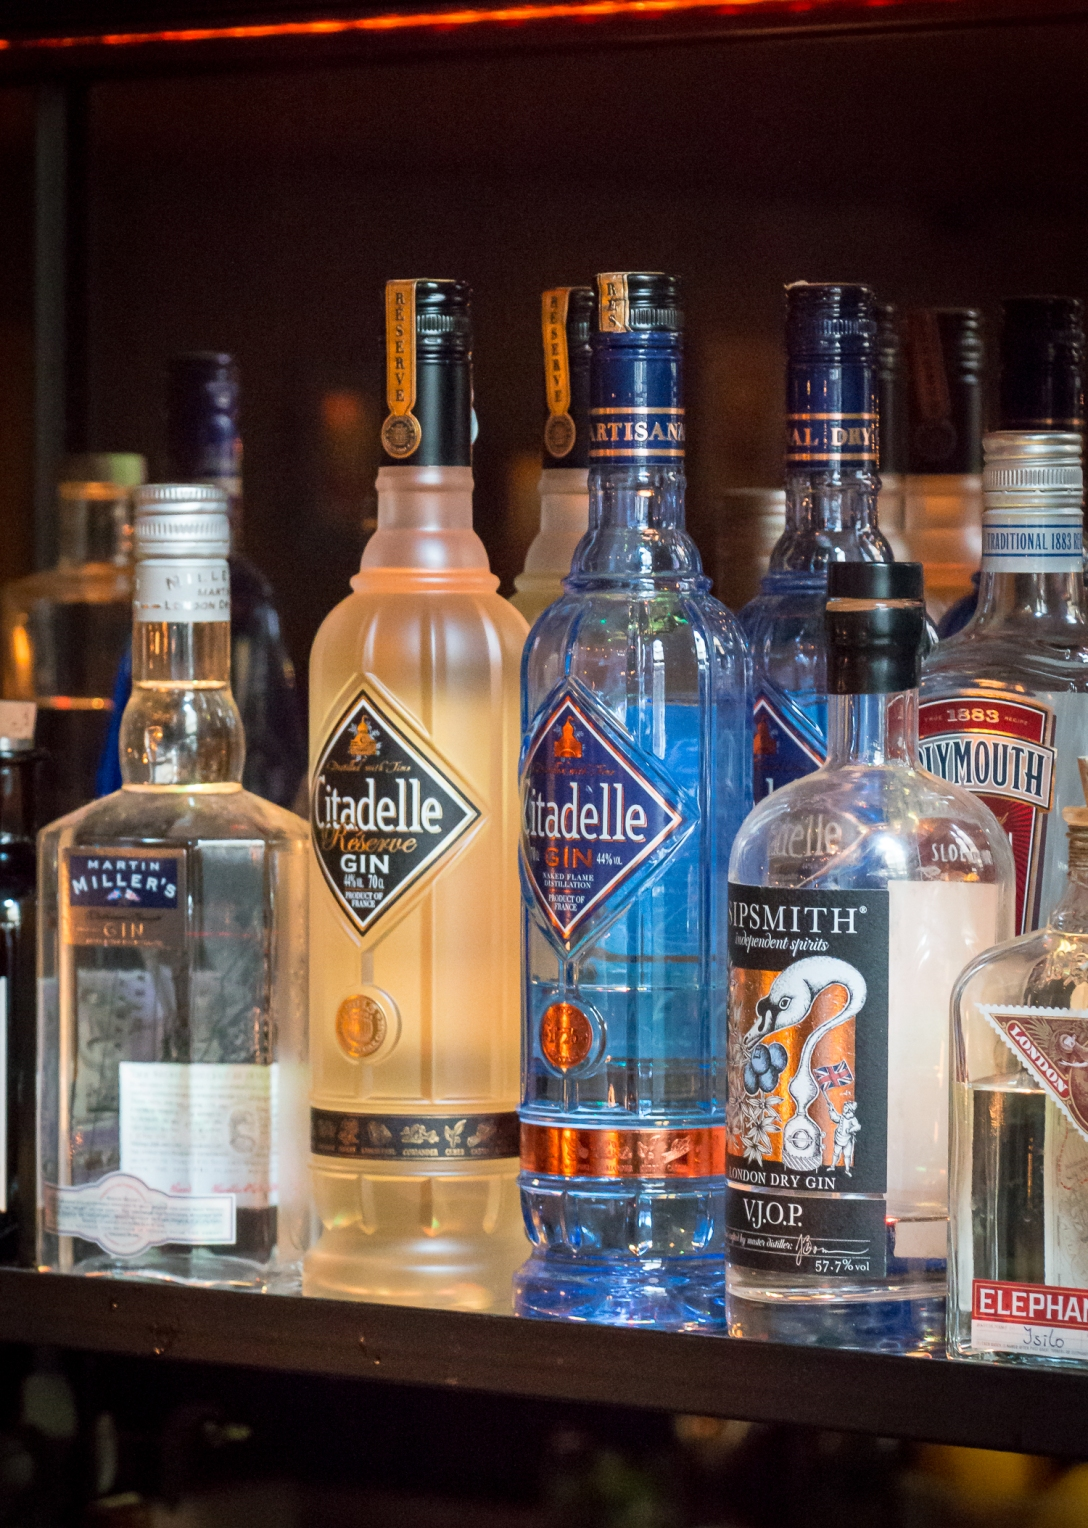 Citadelle Gin at Candeur. Photo by Michael Sperling.